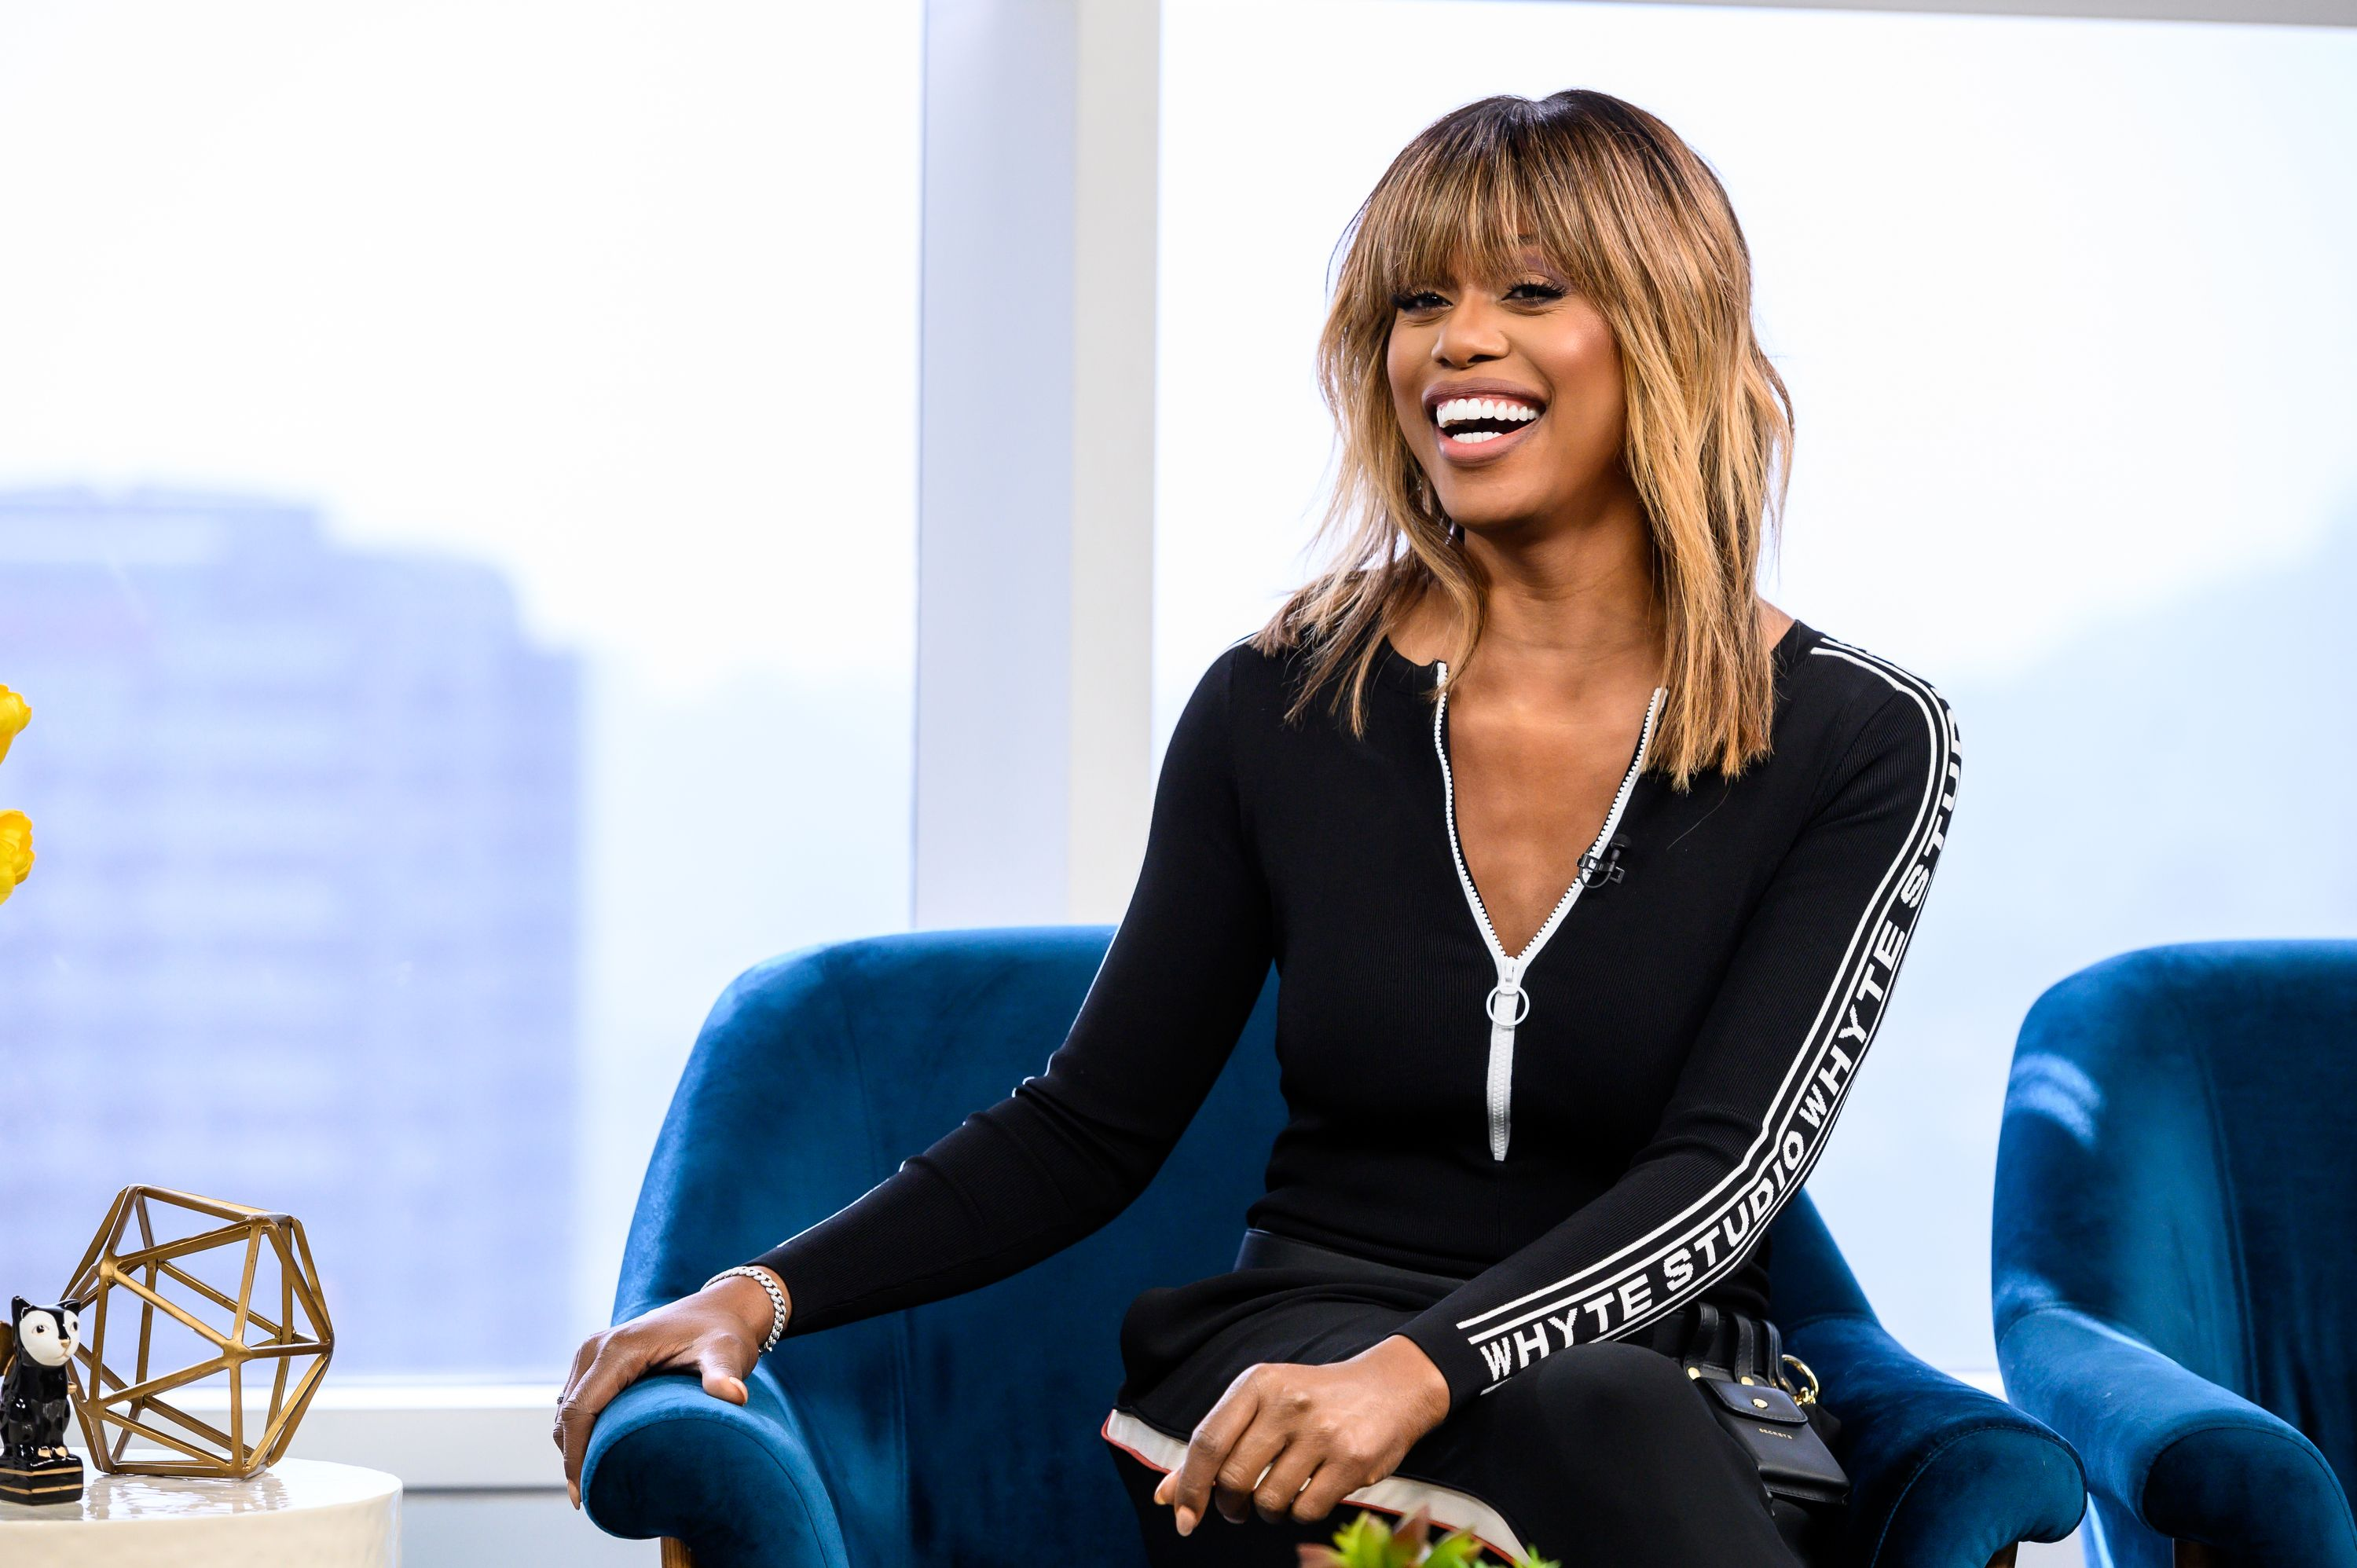 Laverne Cox Could Become the First Transgender Actress to Win an Emmy